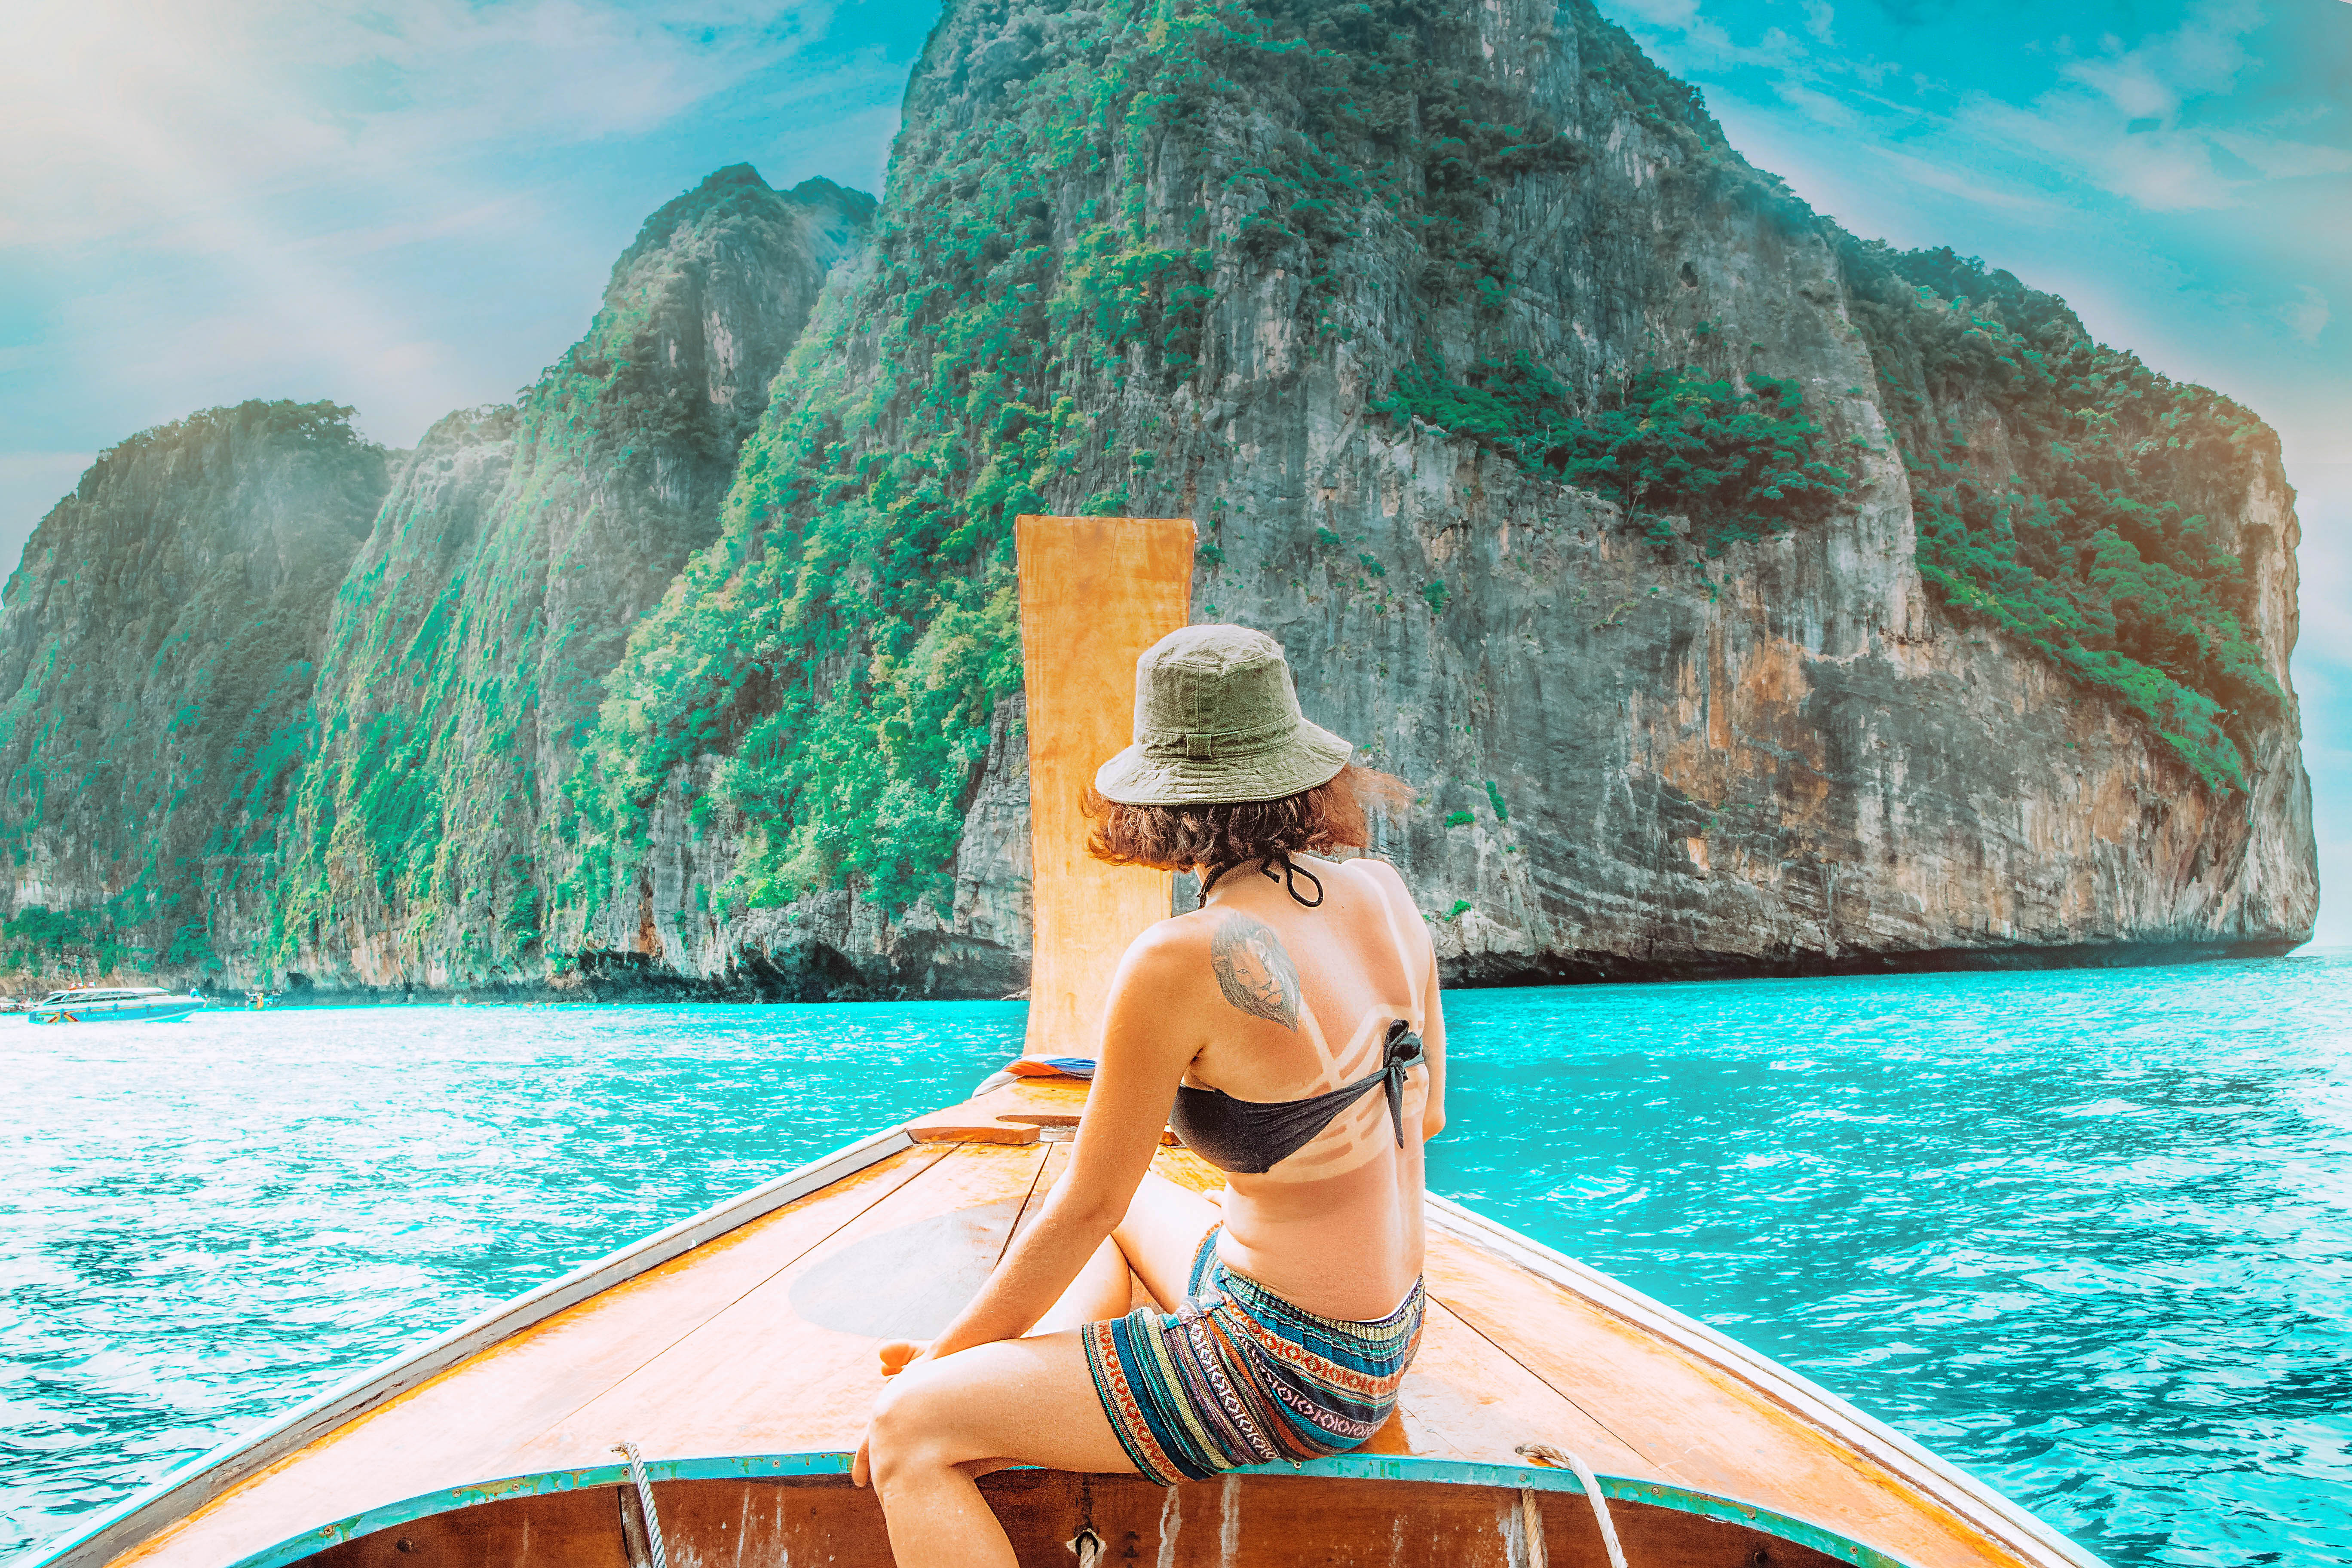 phi phi islands boat trip maya beach thailand south east asia water blue palms island hopping